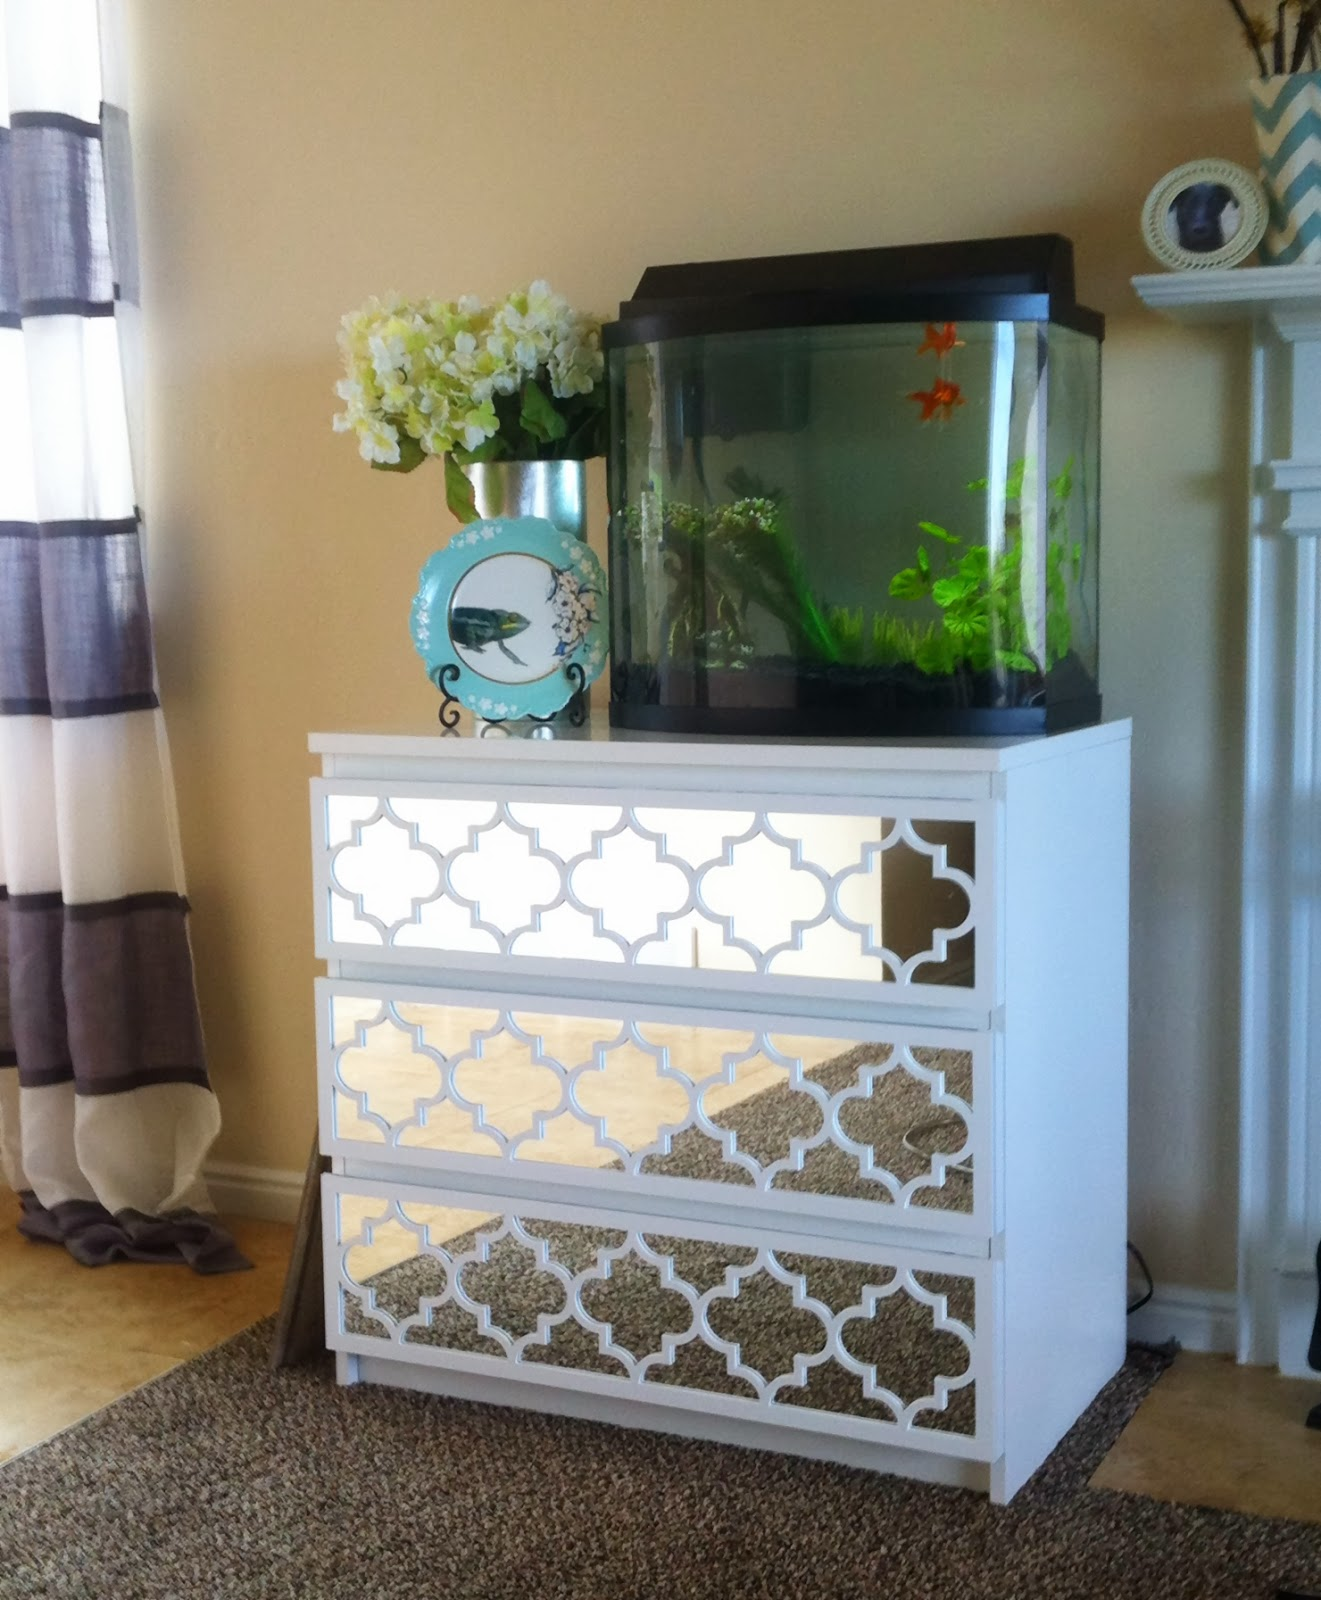 white-mirrored-nightstand-cheap-with-3-drawers-for-bedroom-furniture-ideas-tv-dresser-stand-cool-nightstands-tv-stand-dresser-dresser-bed-frame-mirrored-nightstand-cheap-bedside-tables-cheap-silver-ni